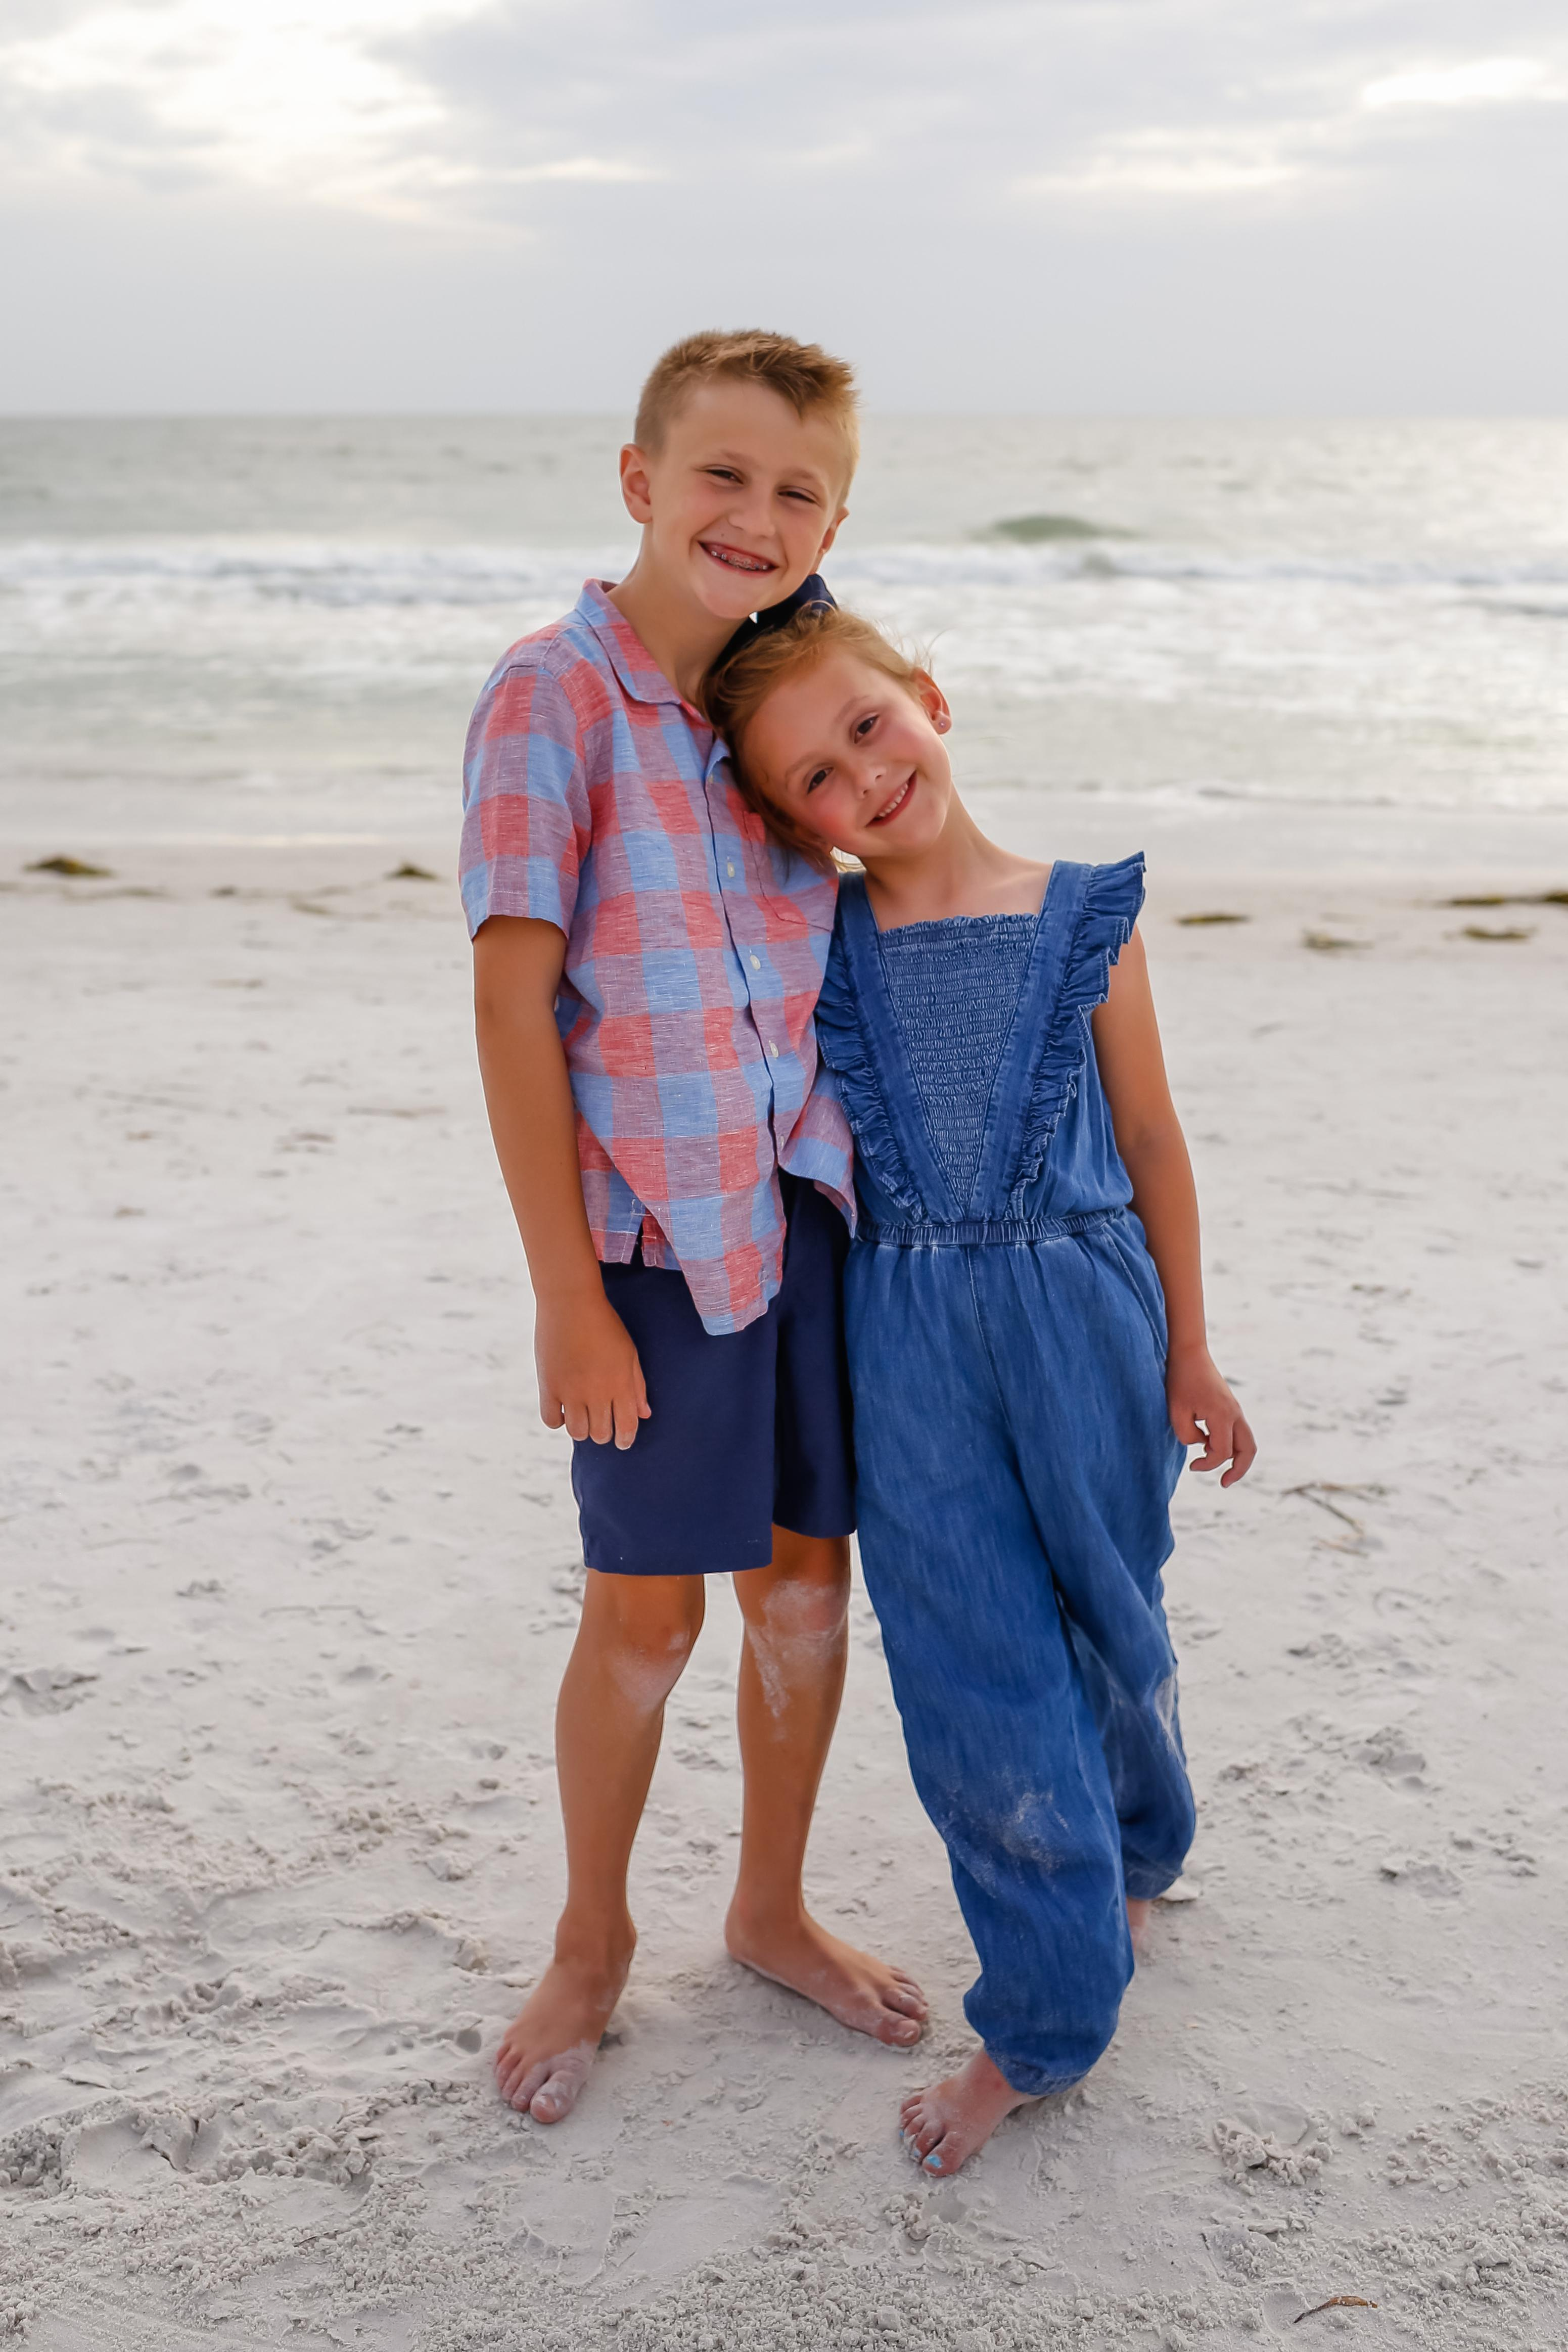 Colin and Nora at the beach.